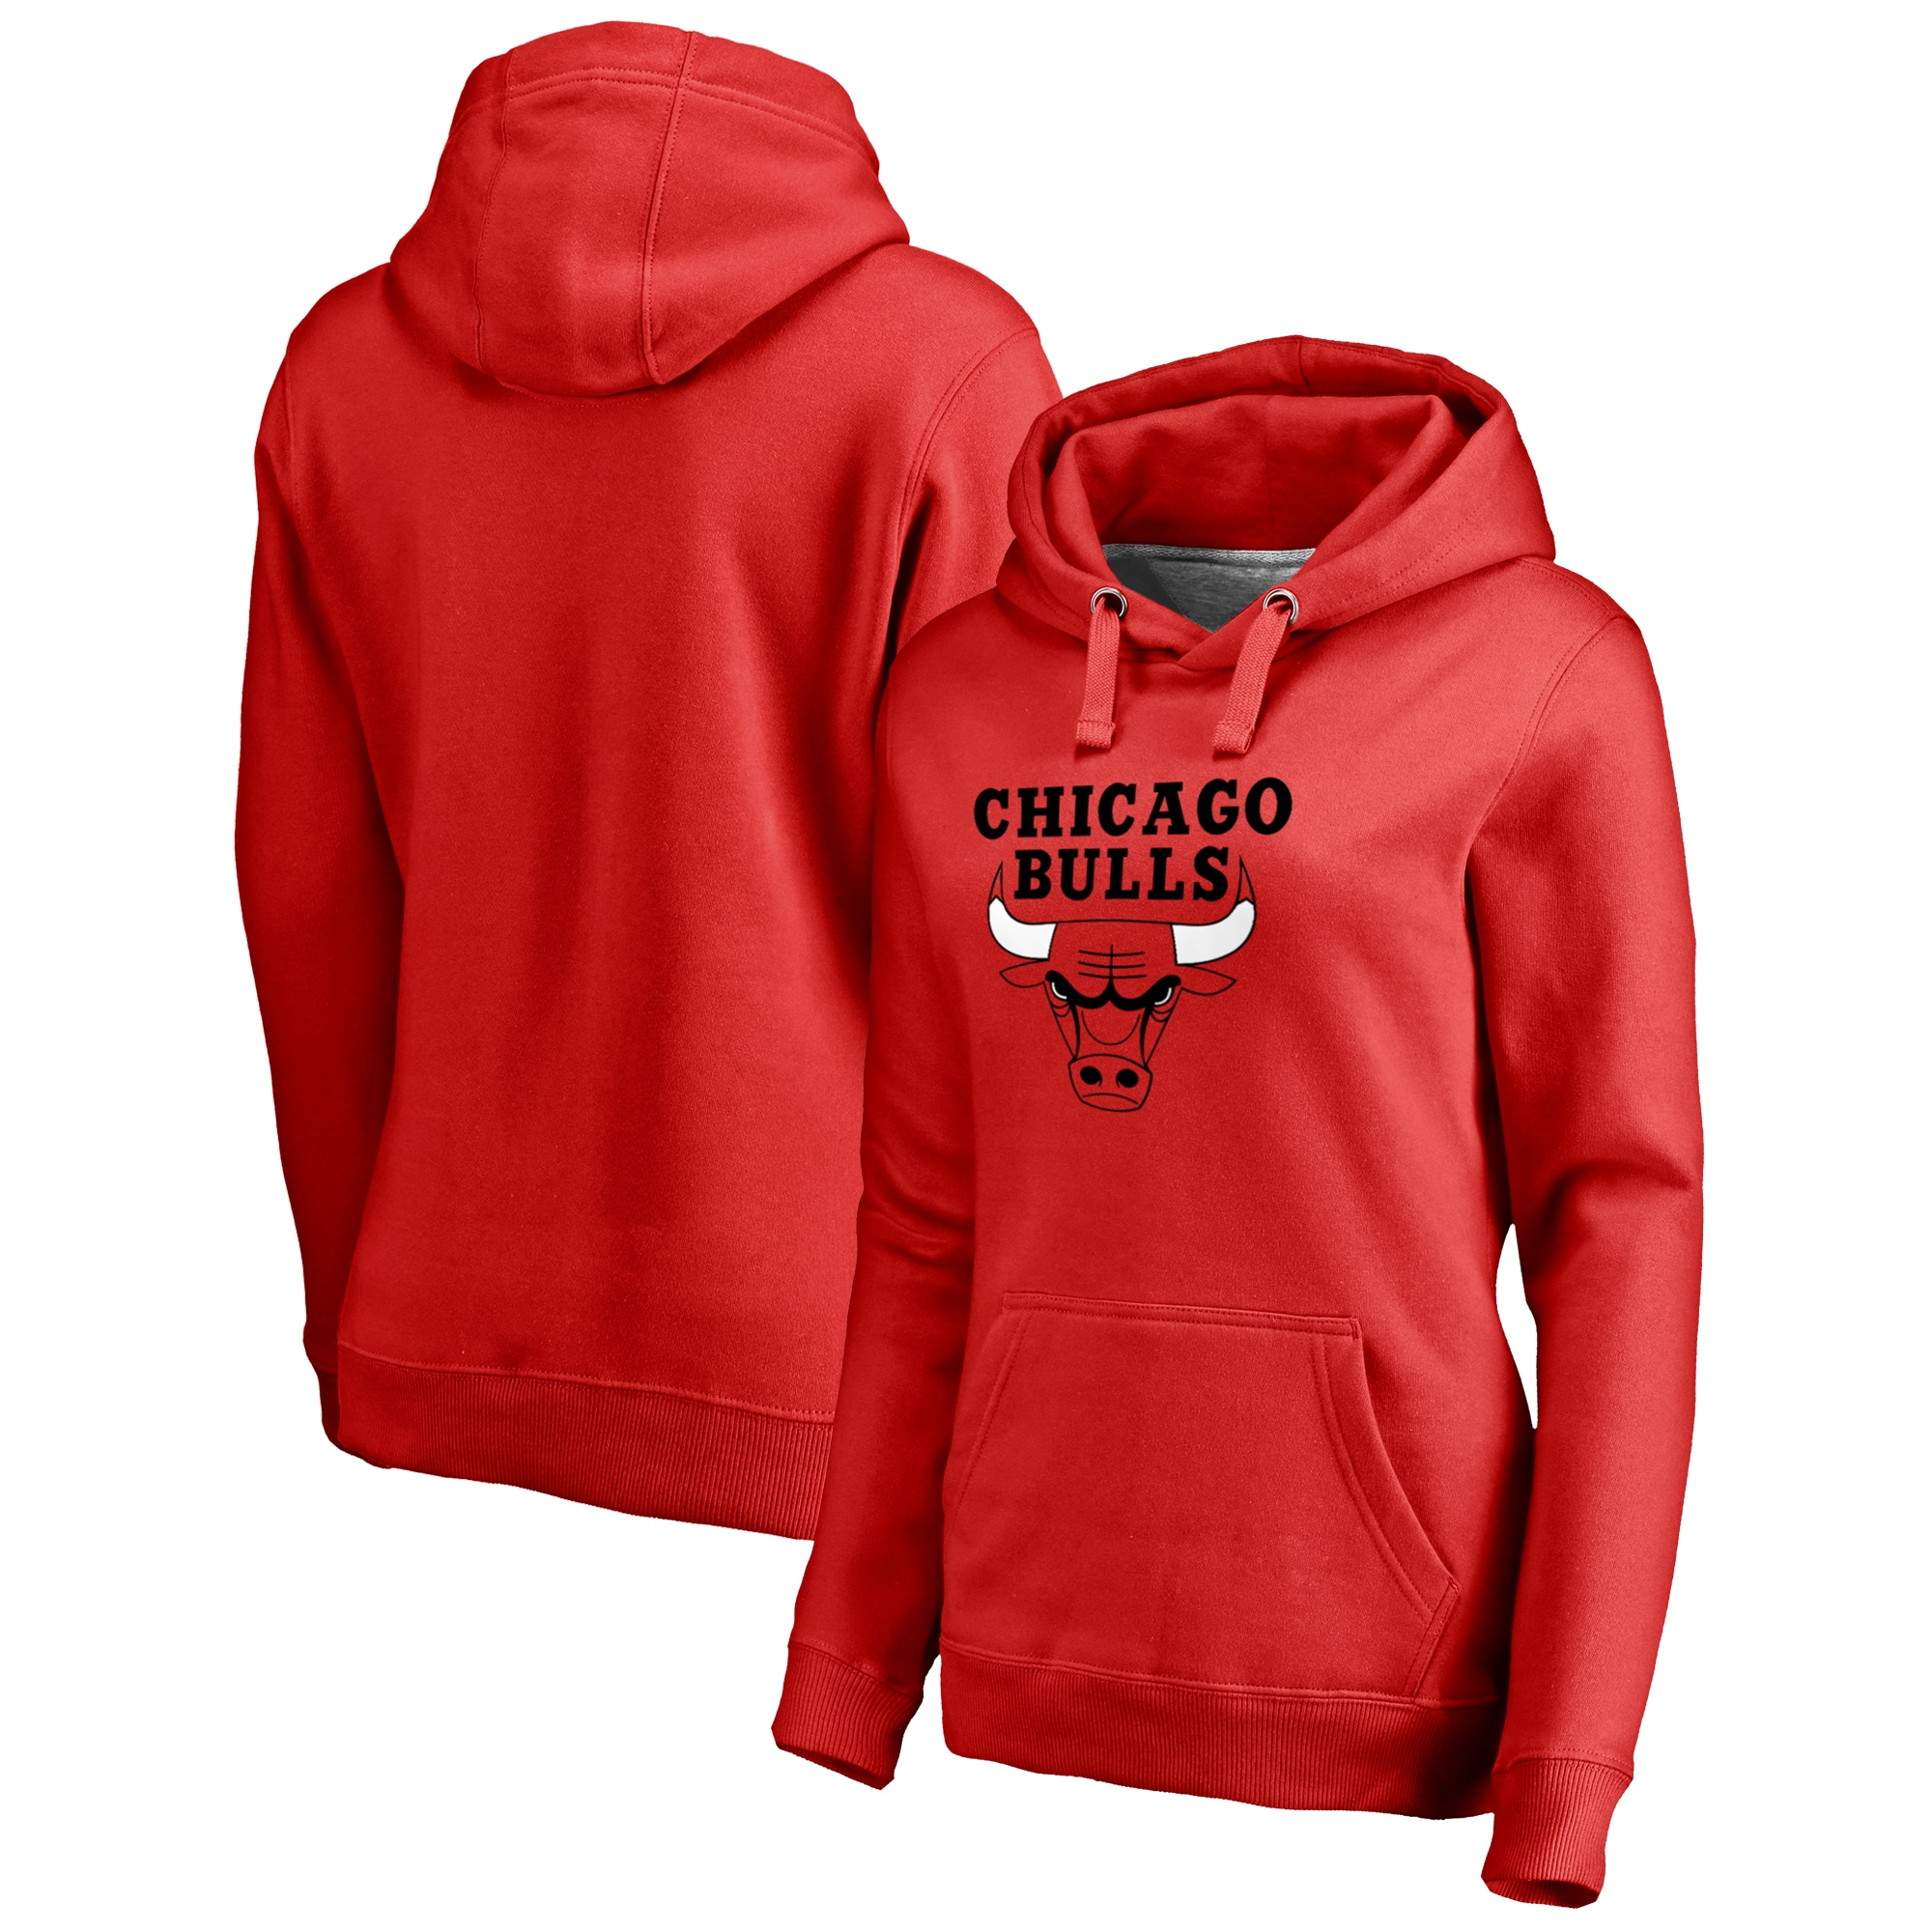 Chicago Bulls Fanatics Branded Women's Plus Size Primary Logo Pullover Hoodie - Red